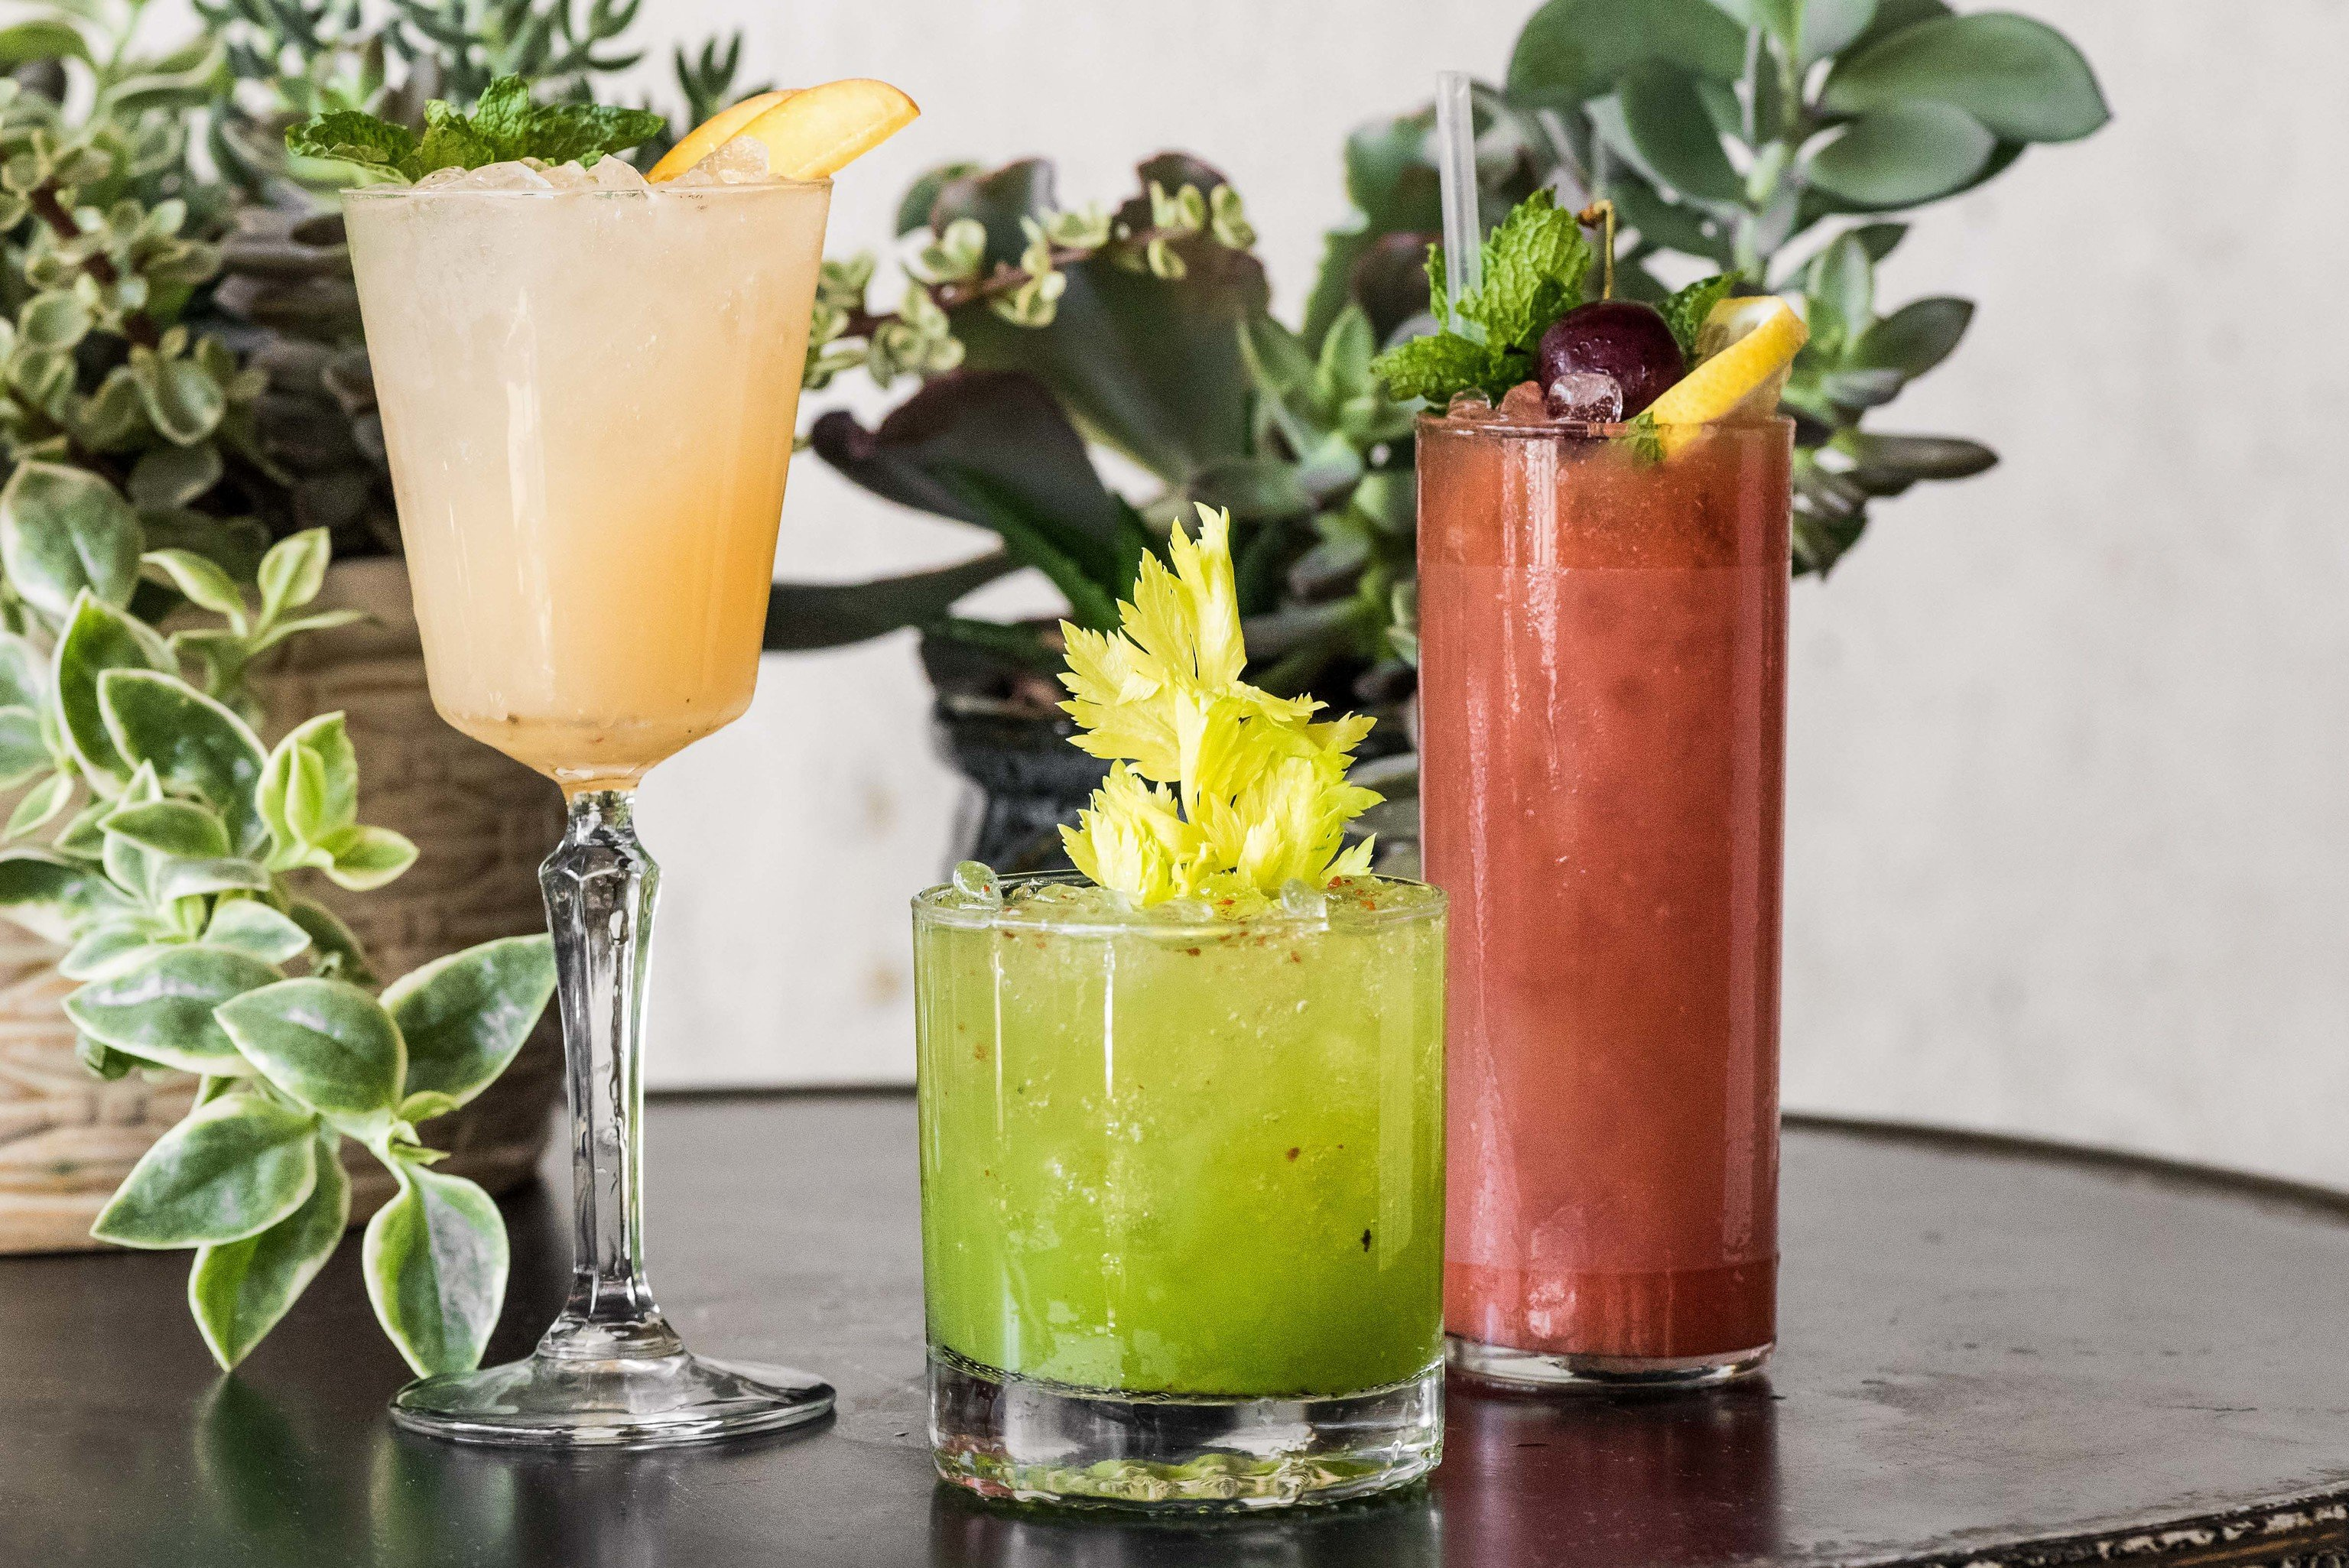 Arts + Culture Food + Drink Hotels Weekend Getaways Drink cup food cocktail cocktail garnish non alcoholic beverage mai tai glass juice mint julep plant beverage fruit drink